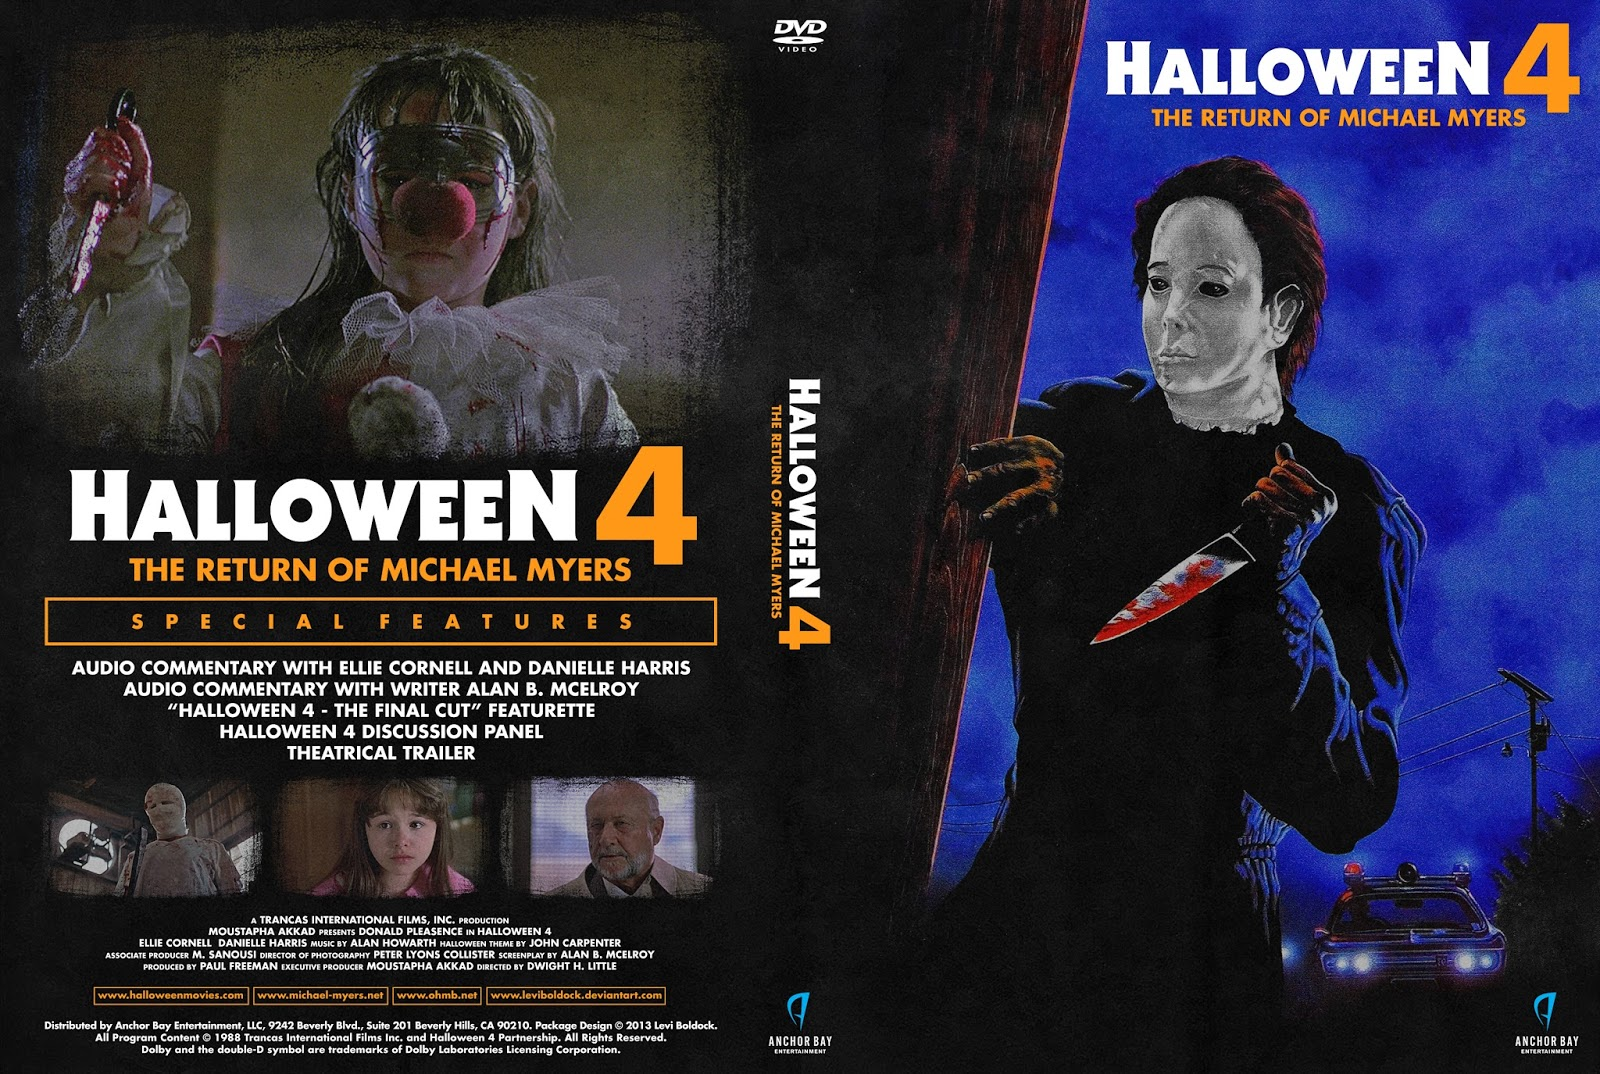 the horrors of halloween: halloween 4 the return of michael myers